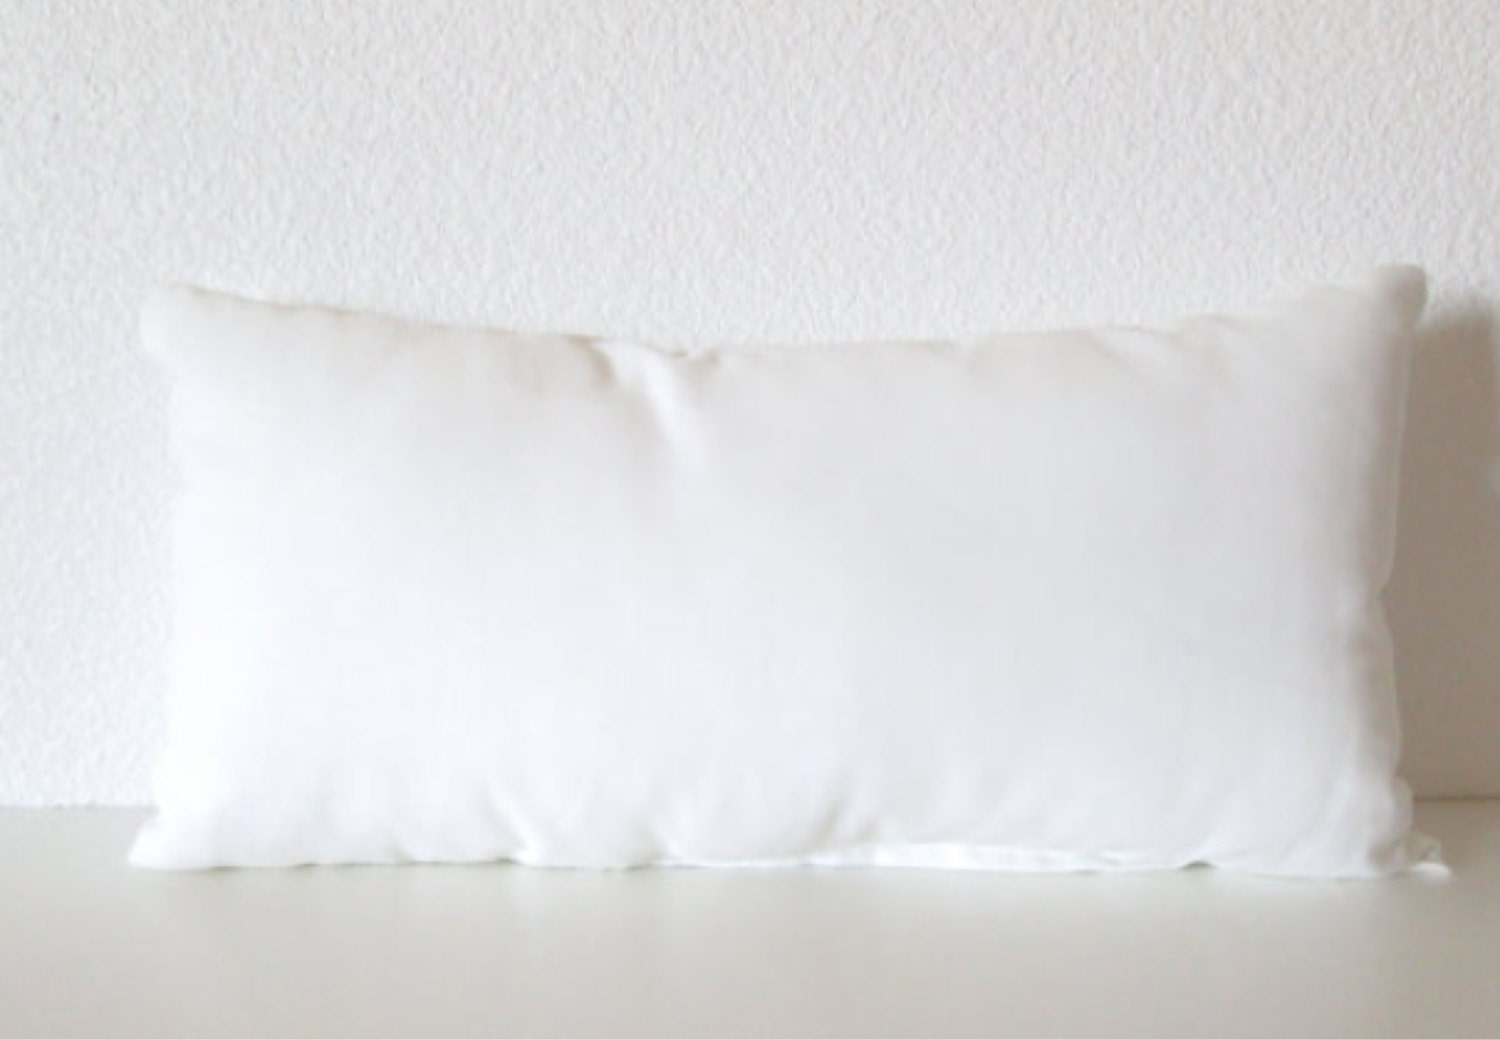 Pillow Inserts. Showing 11 of 11 results that match your query. Search Product Result. Product - 16 in. Square Pillow Insert. Product Image. Price $ Product Title. 16 in. Square Pillow Insert. Add To Cart. There is a problem adding to cart. Please try again. Product - Softline Athena 20